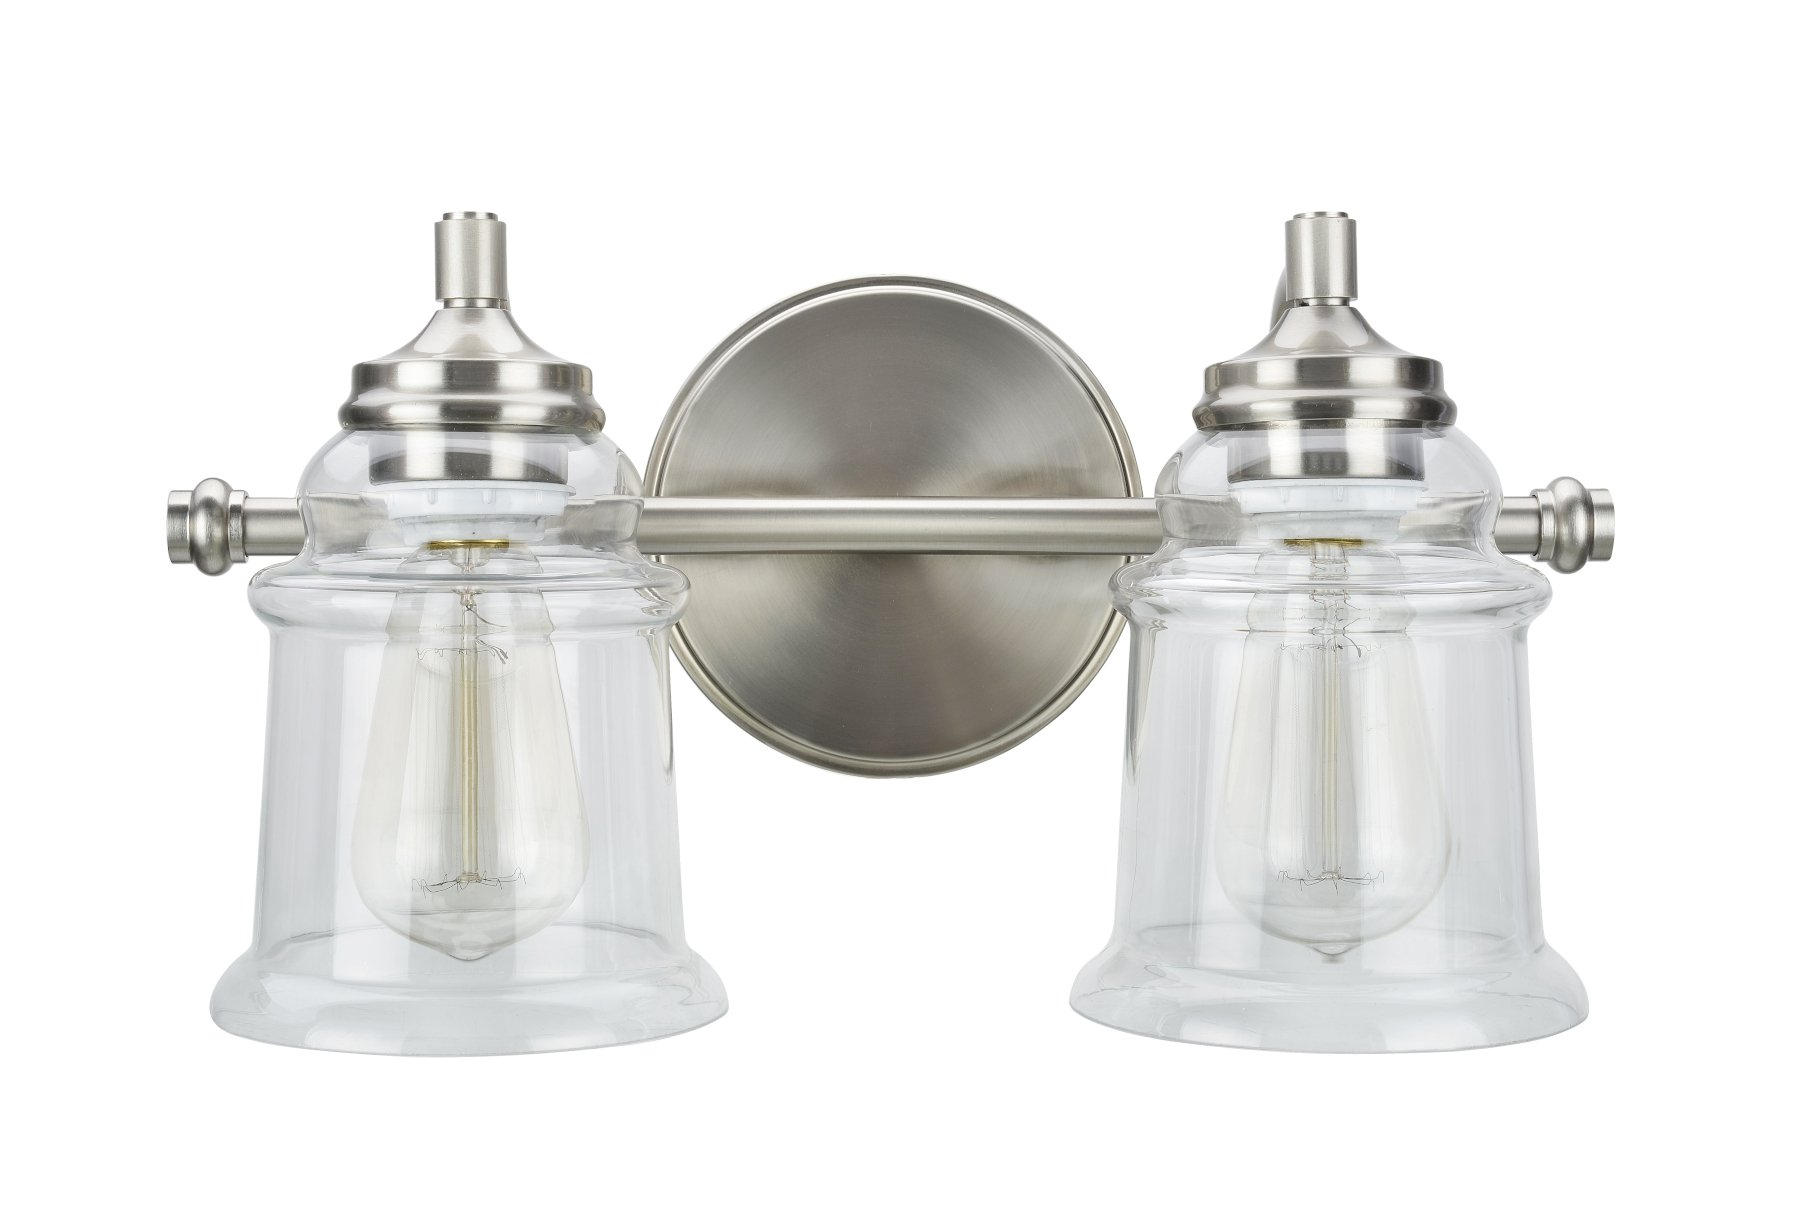 "Aspen Creative 62082, Two-Light Metal Bathroom Vanity Wall Light Fixture, 15 1/4"" Wide, Transitional Design in Brushed Nickel with Clear Glass Shade"